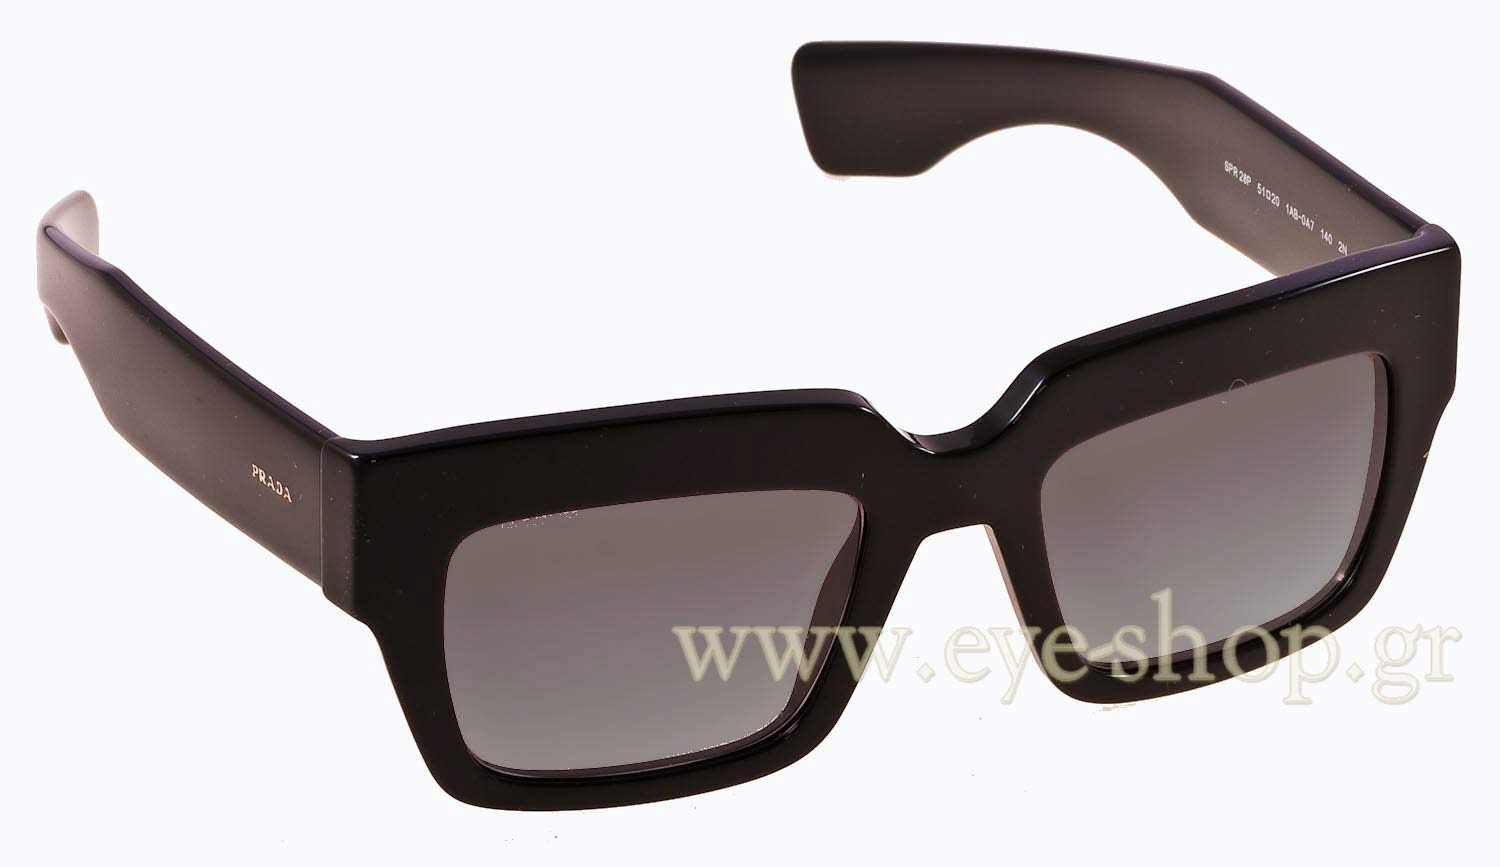 a8f8fdbc88b1 Prada Sunglasses For Women Prices